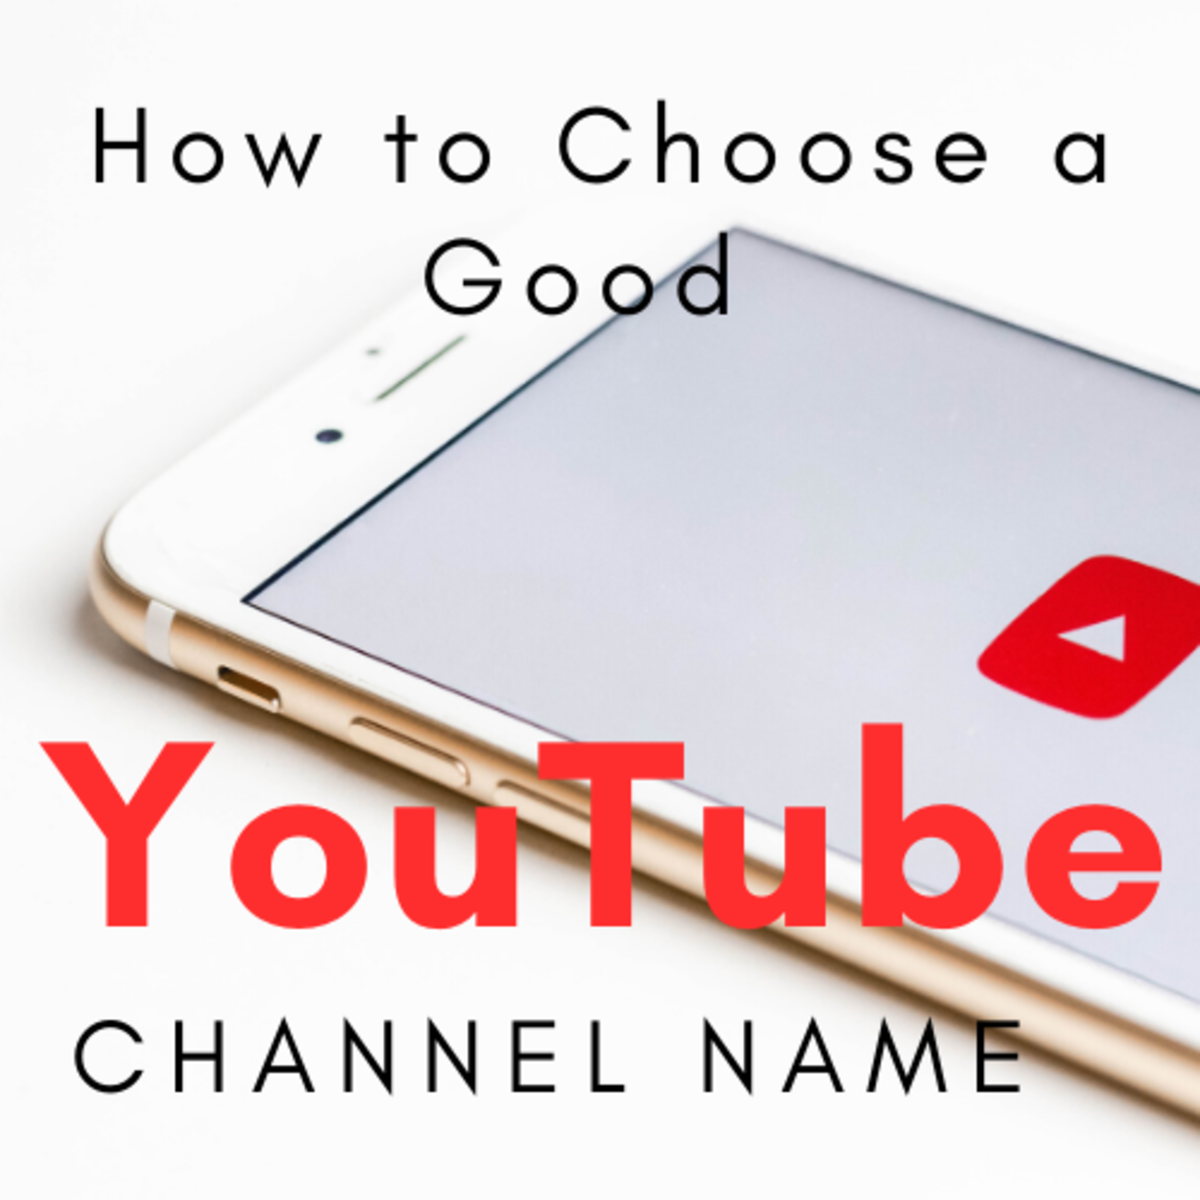 How to Choose a Channel Name for YouTube